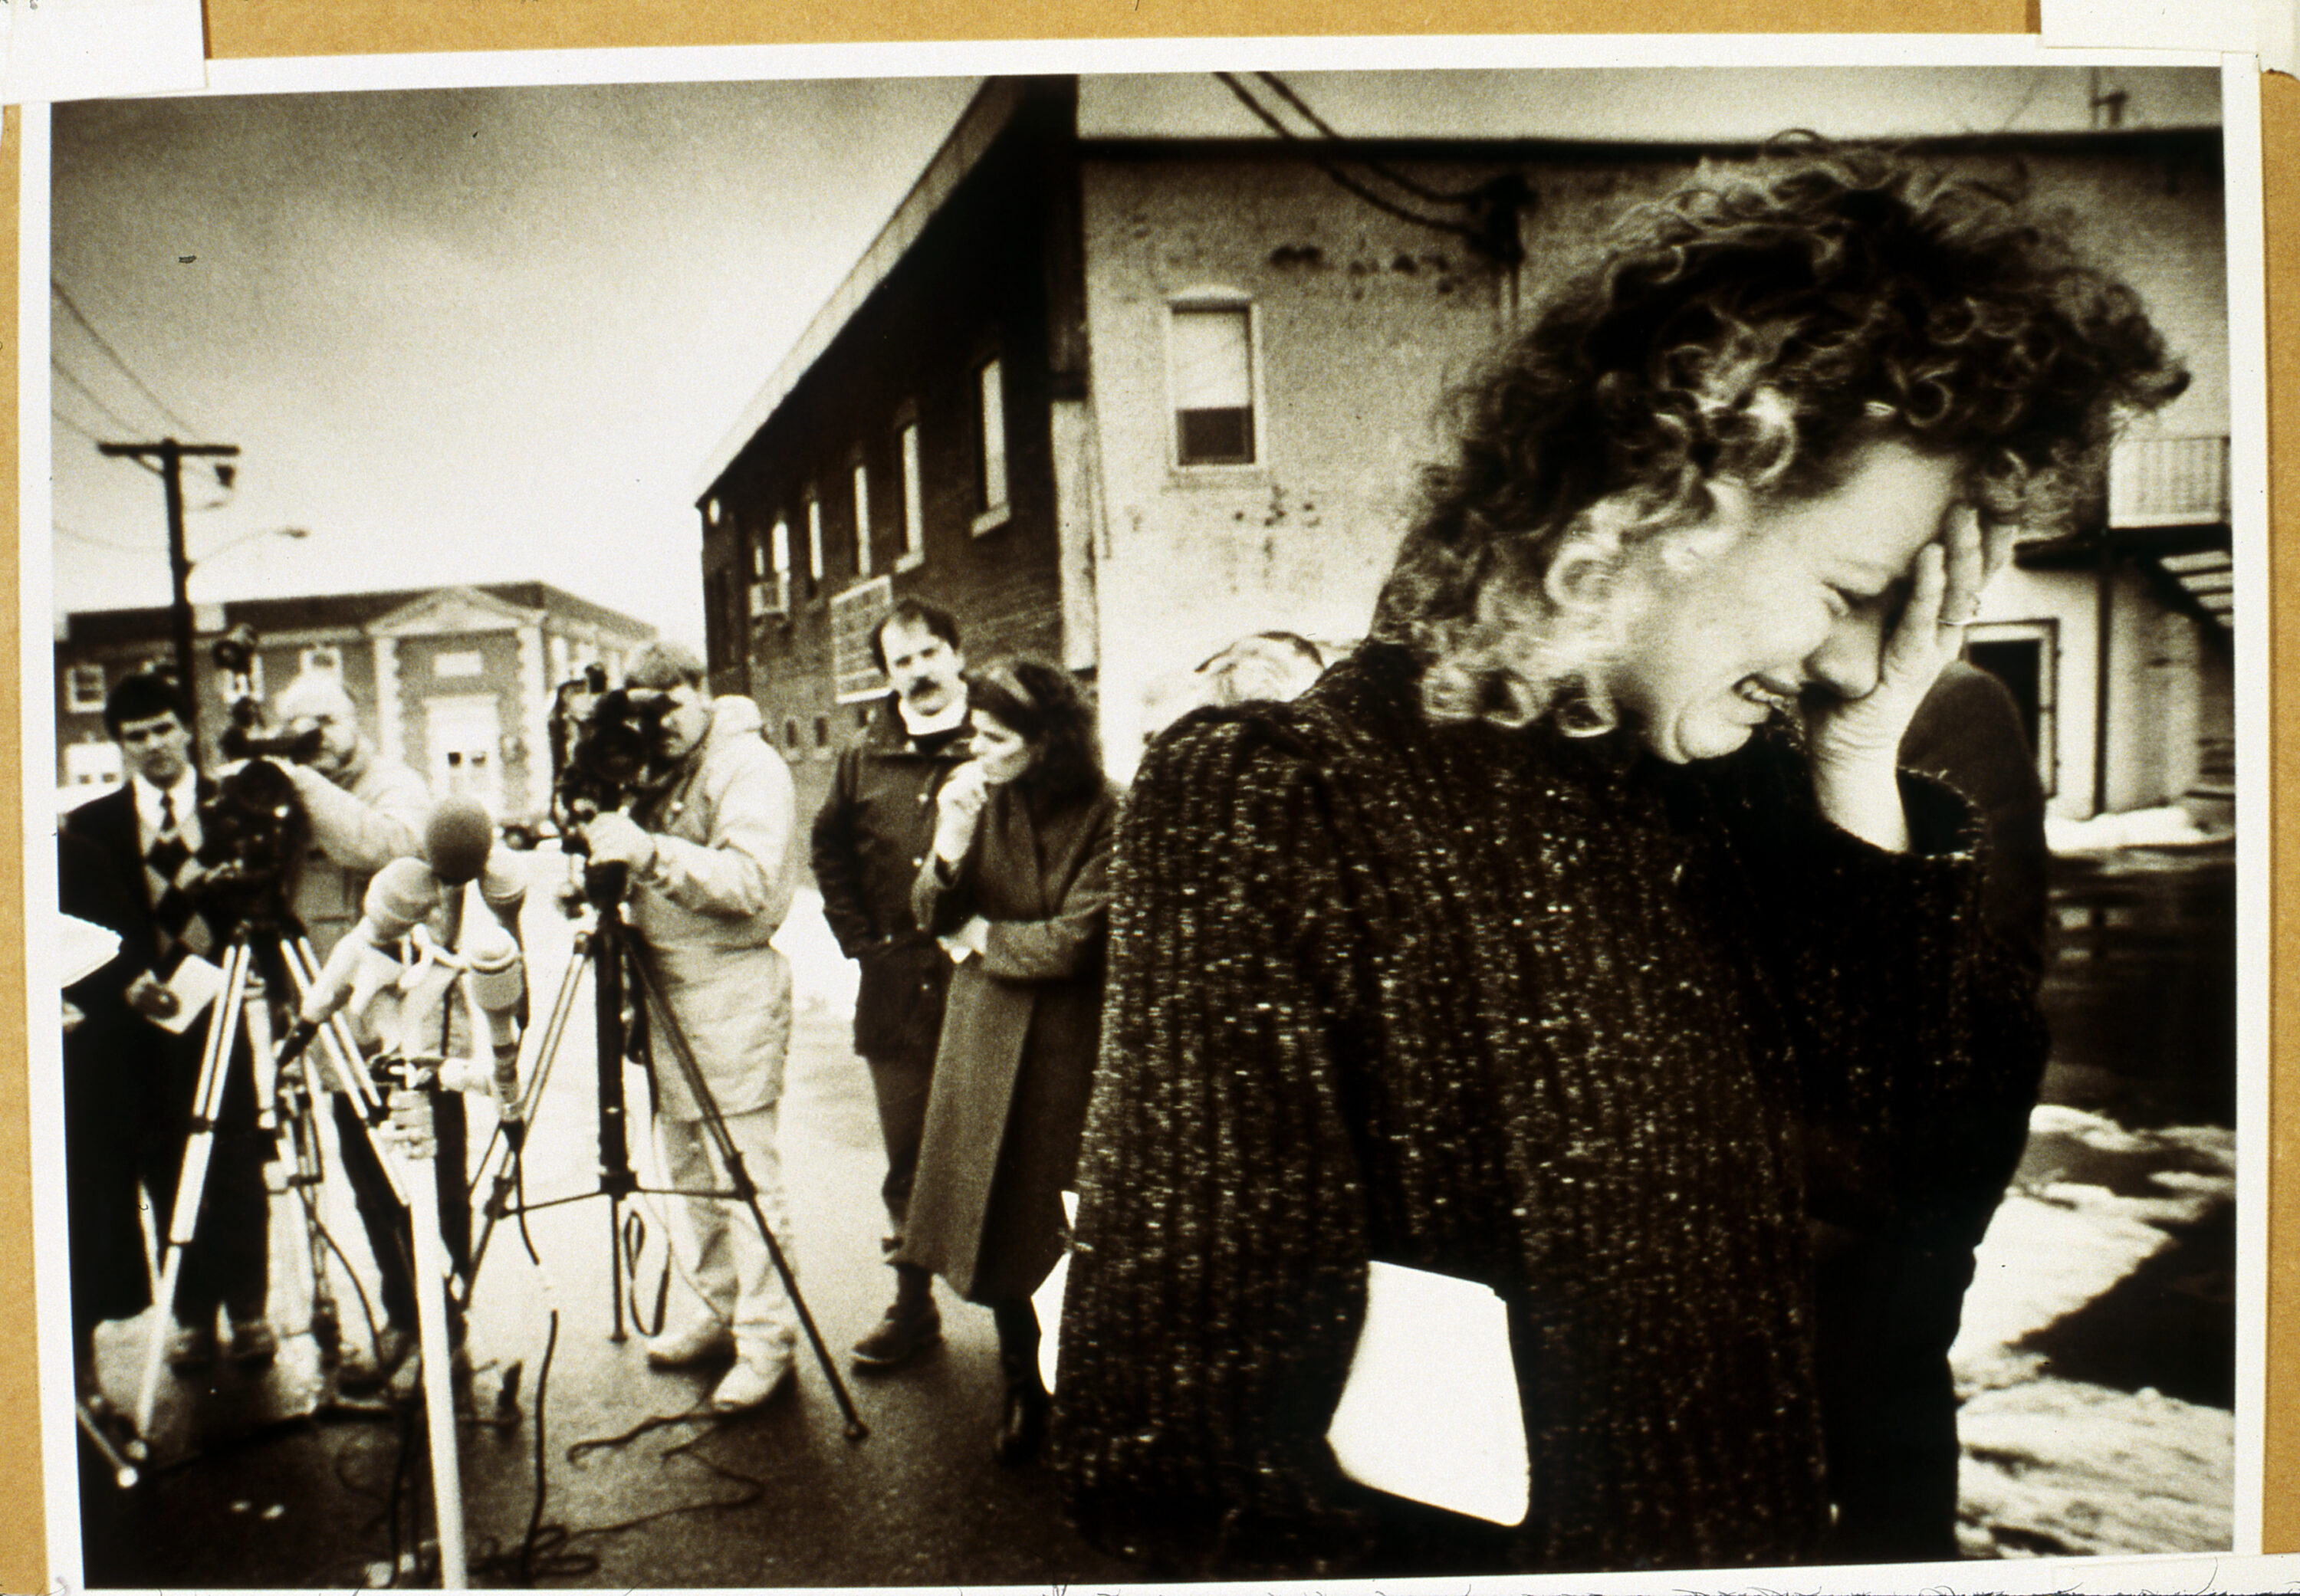 A black-and-white photograph of a light-skinned adult with curly hair crying into their hand. They wear a sweater and stand in the foreground, seen waist up, while several photographers swarm in the background behind a microphone stand set up in the middle of the street.